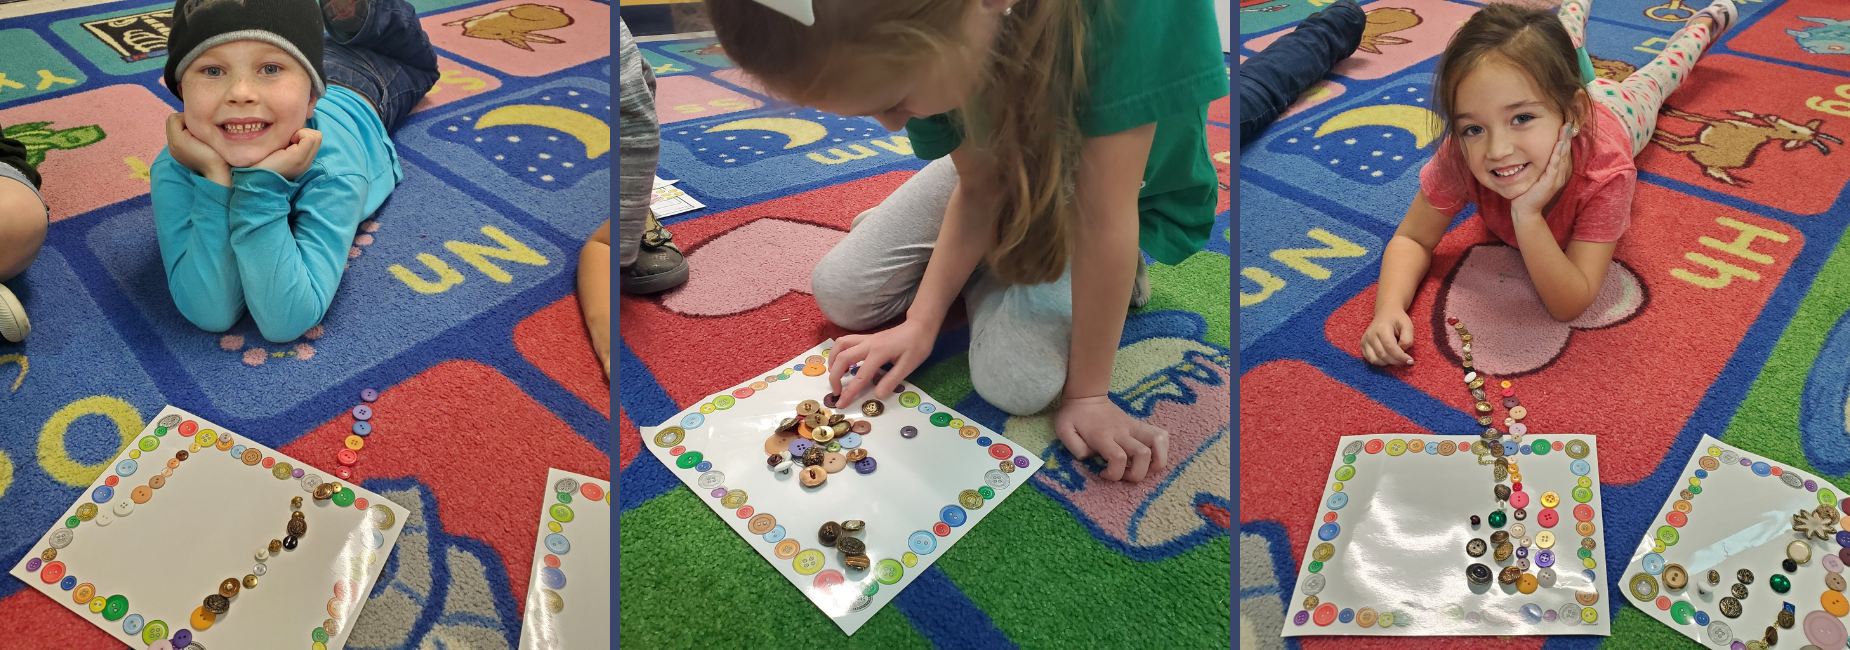 students learning to count with buttons